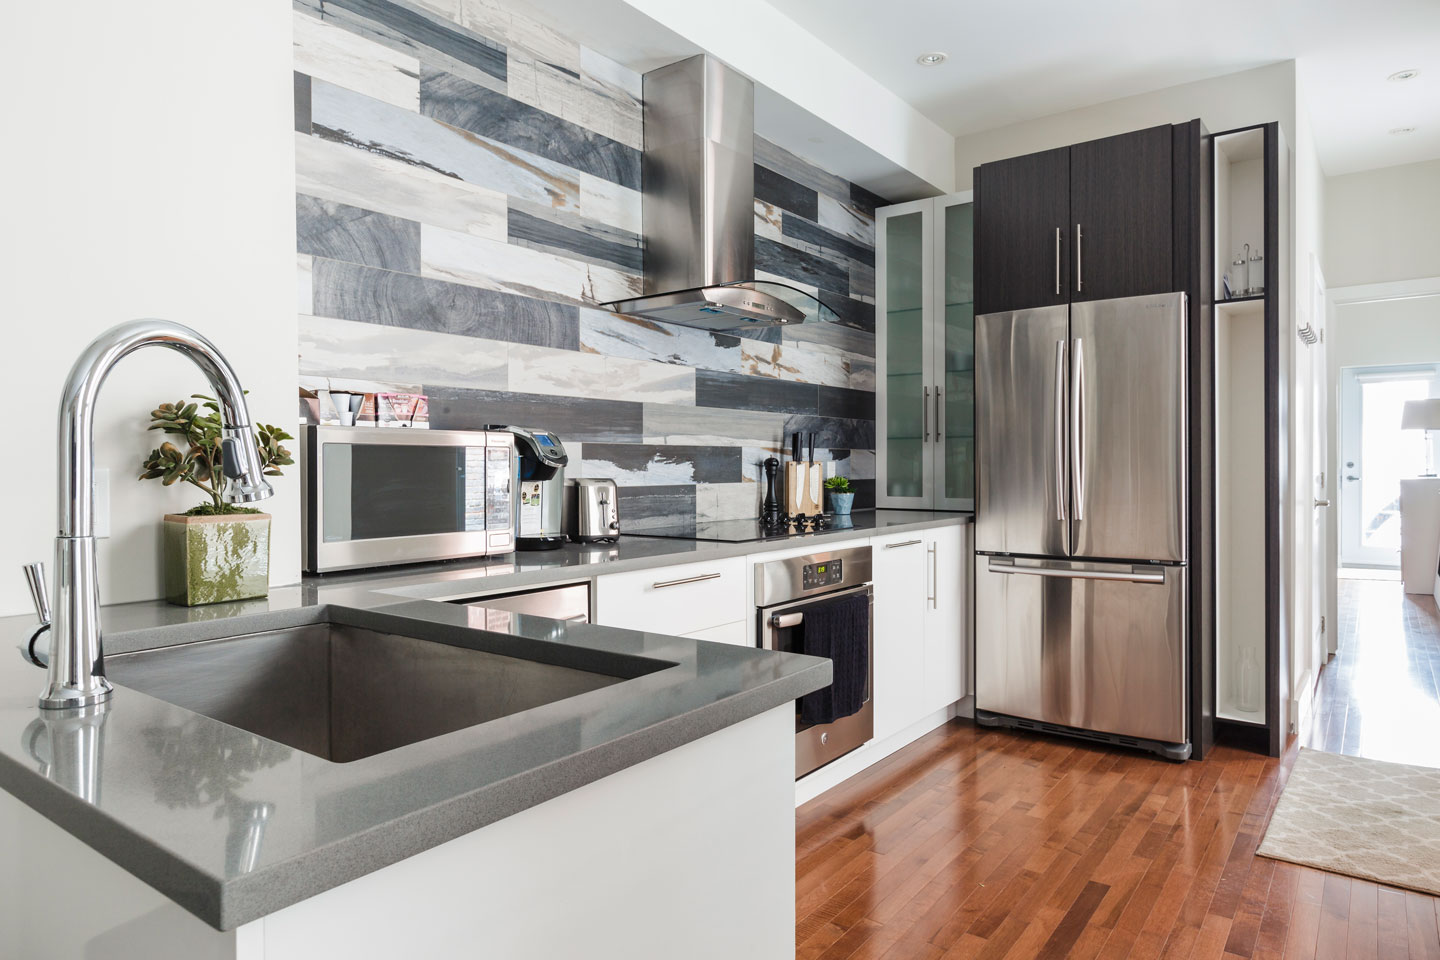 Fabfour: fully equipped kitchen